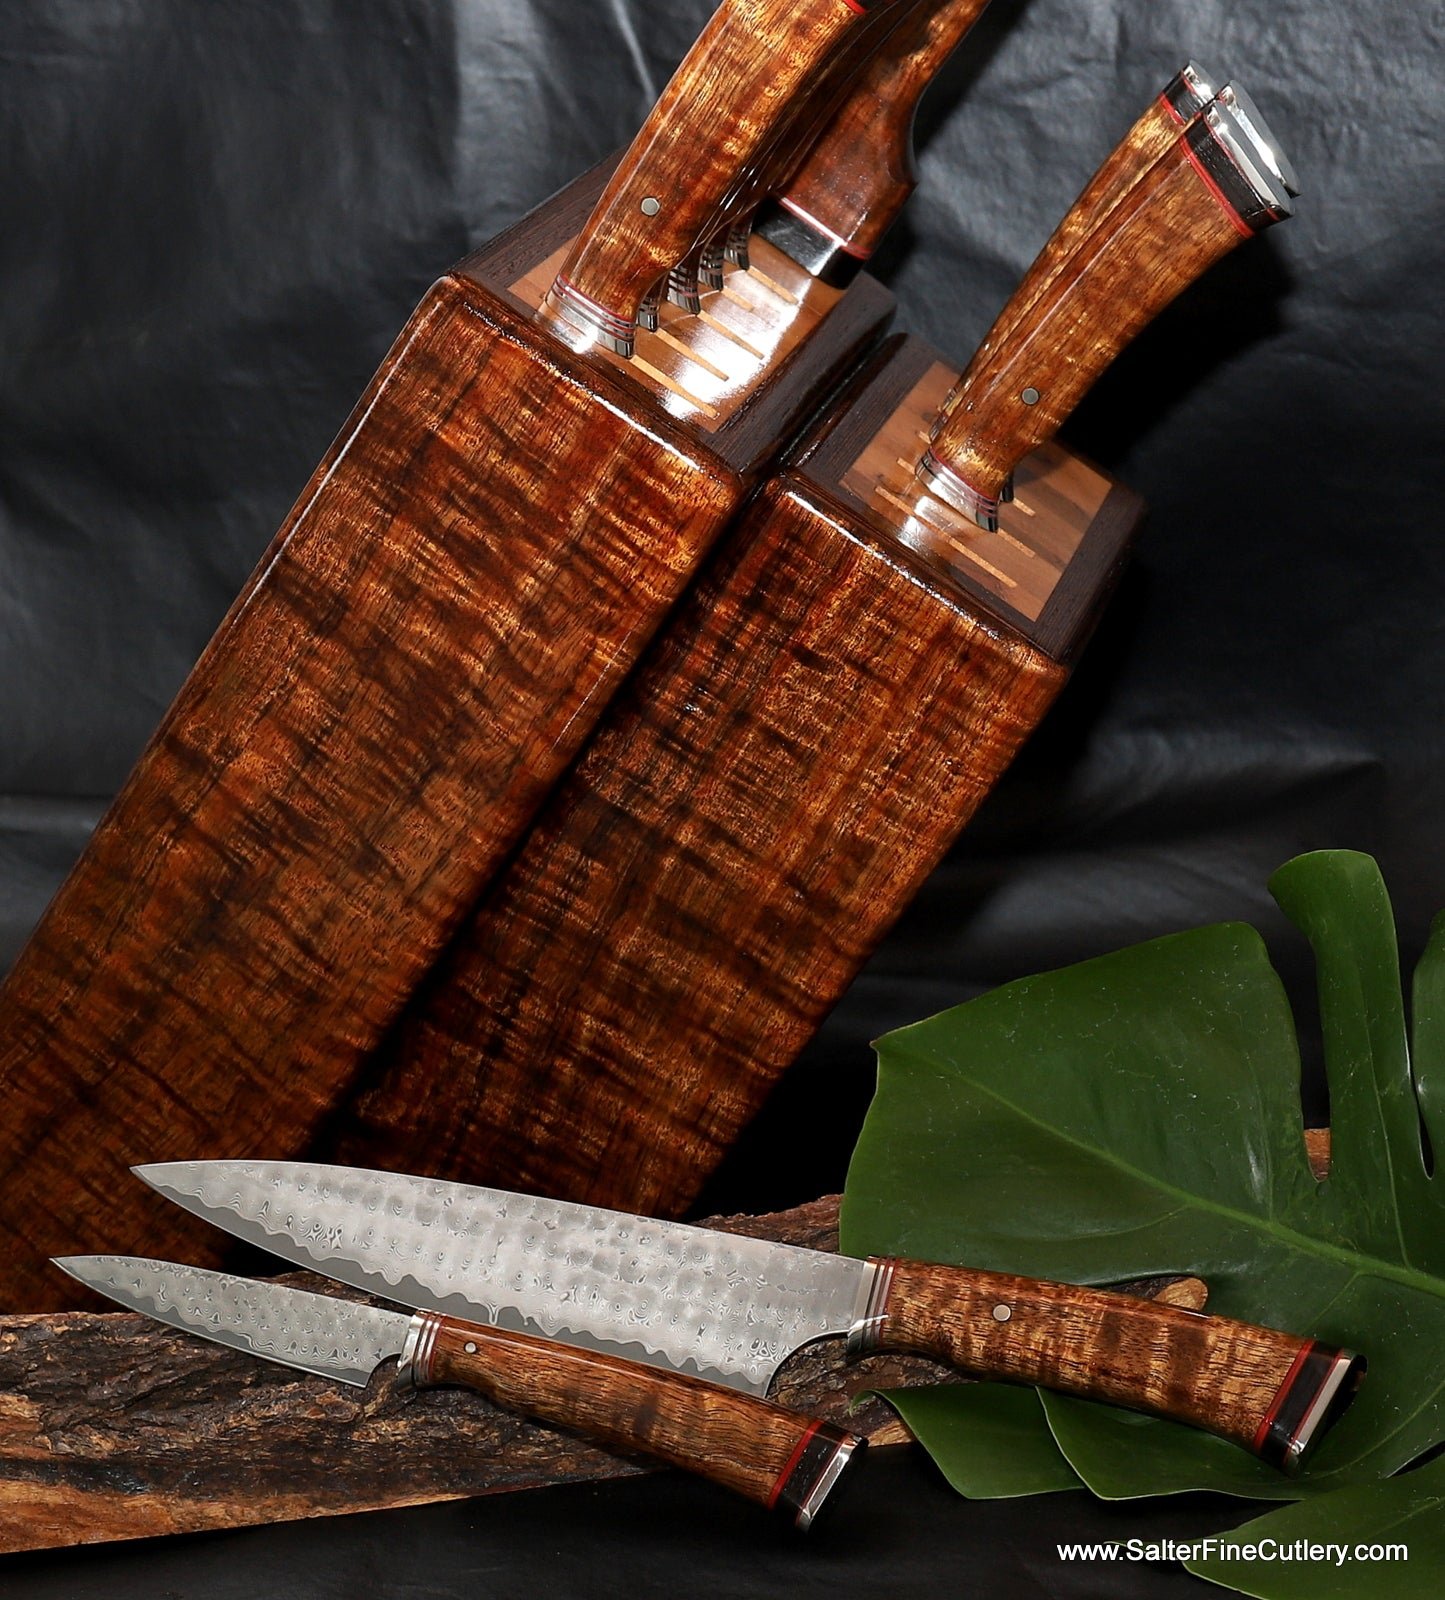 Custom luxury kitchen knife set in block stand for gourmet cooking by Salter Fine Cutlery of Hawaii